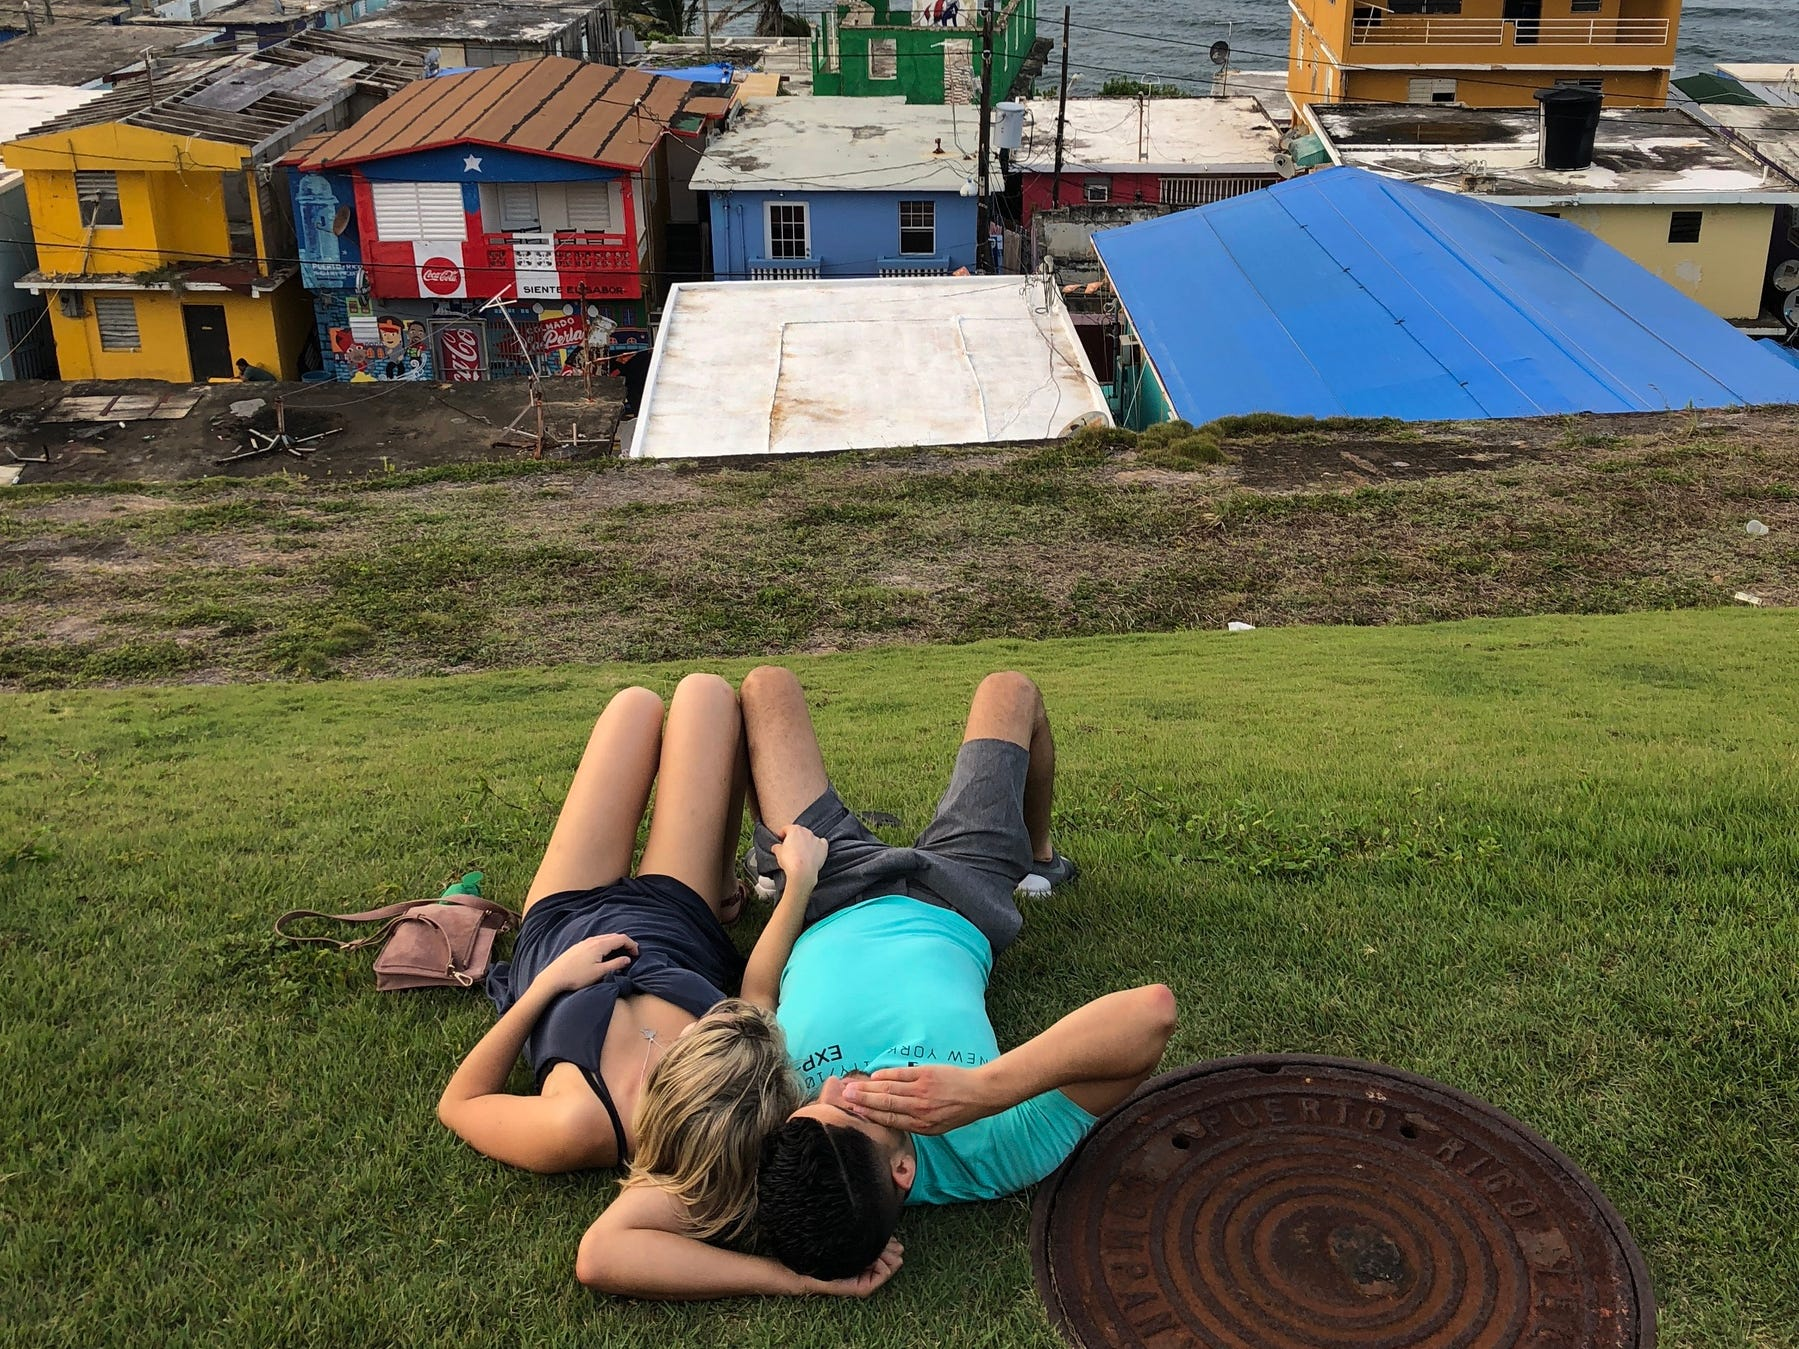 Ten months after Hurricane Maria hit Puerto Rico blue tarps can still be seen on rooftops in old San Juan as a couple lays on the grass in the evening facing the Atlantic Ocean.